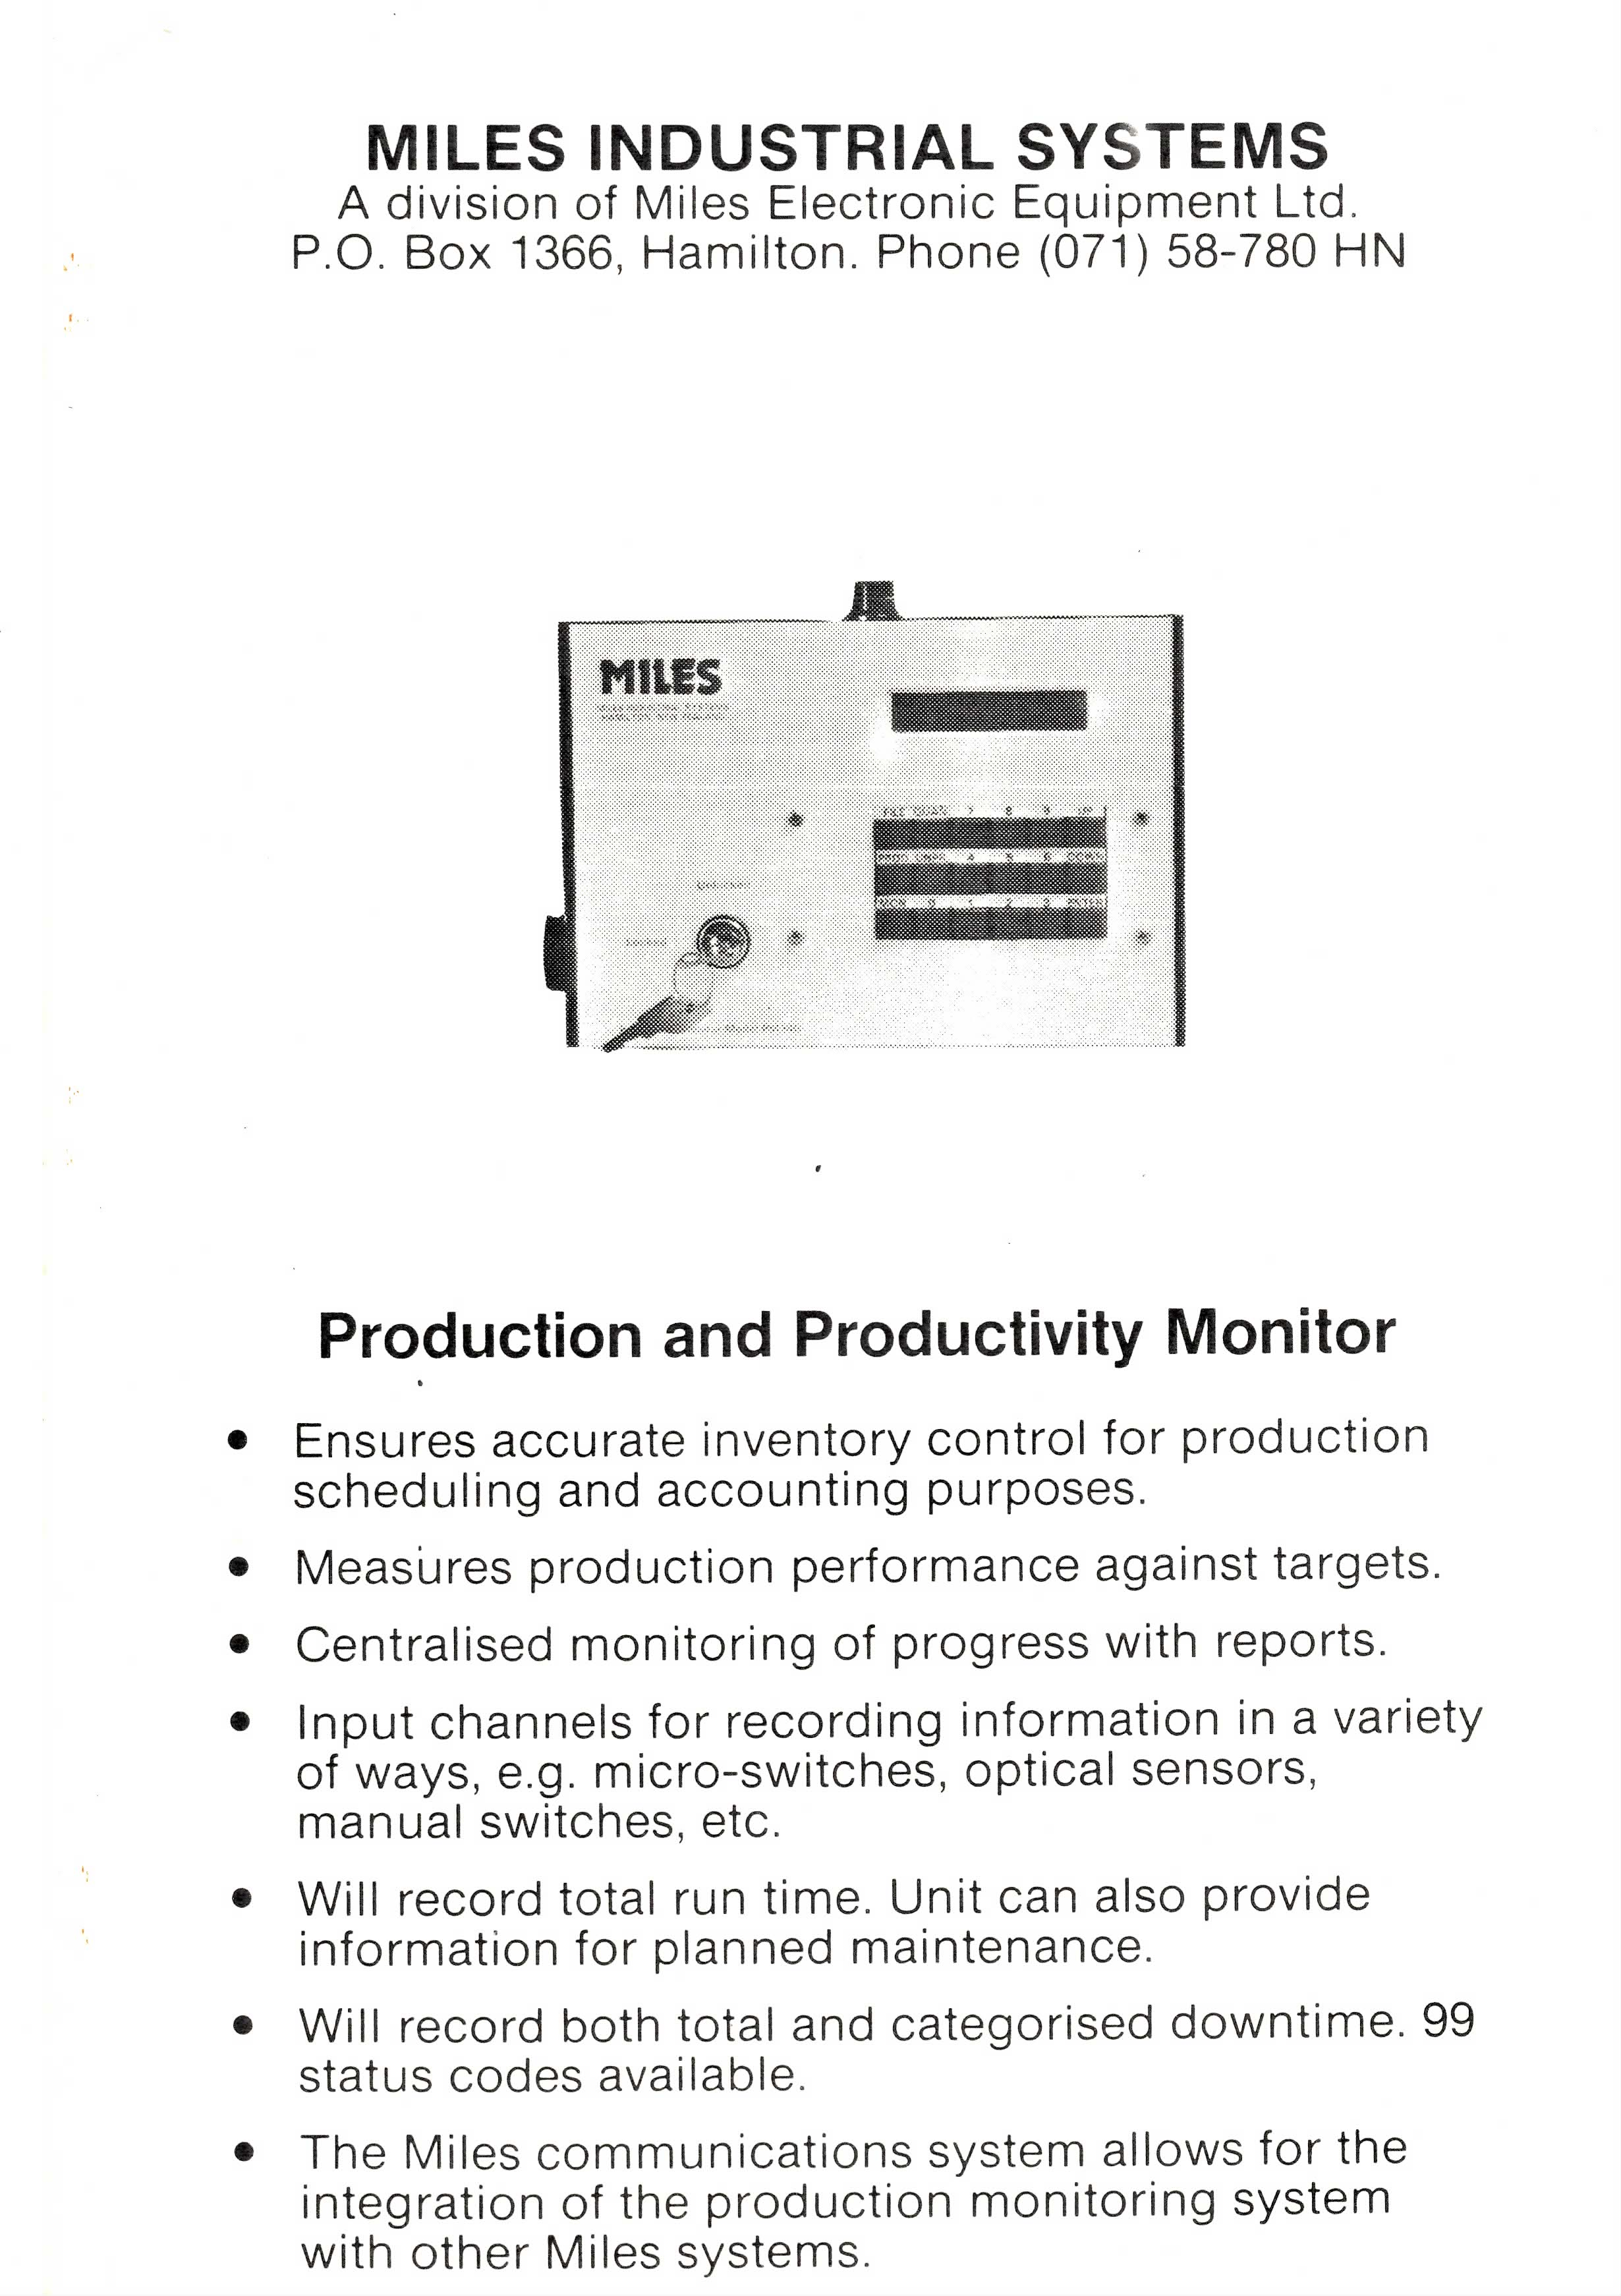 Production Monitor